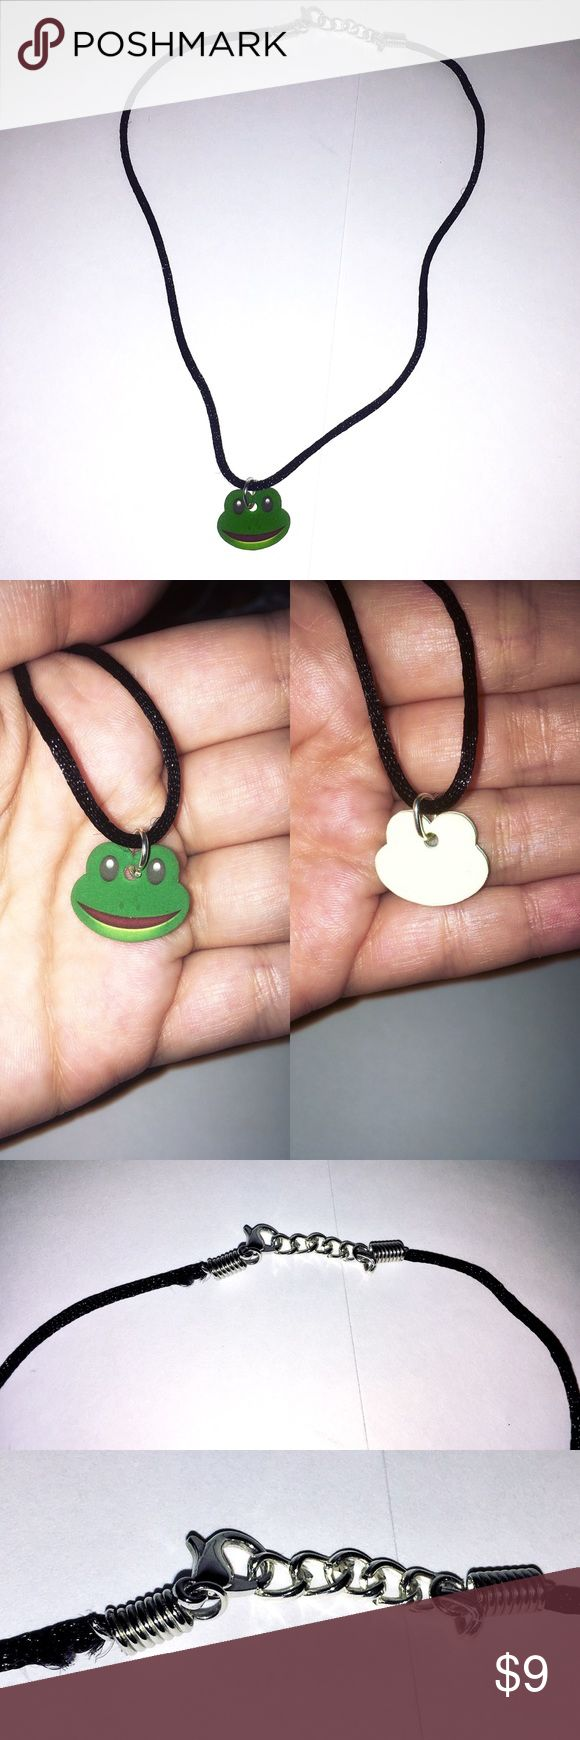 Handmade frog emoji choker Handmade frog emoji choker. Worn only once! Super cute! As always, accepting reasonable offers and bundles of multiple items! 🐸 🐸 🐸 Jewelry Necklaces